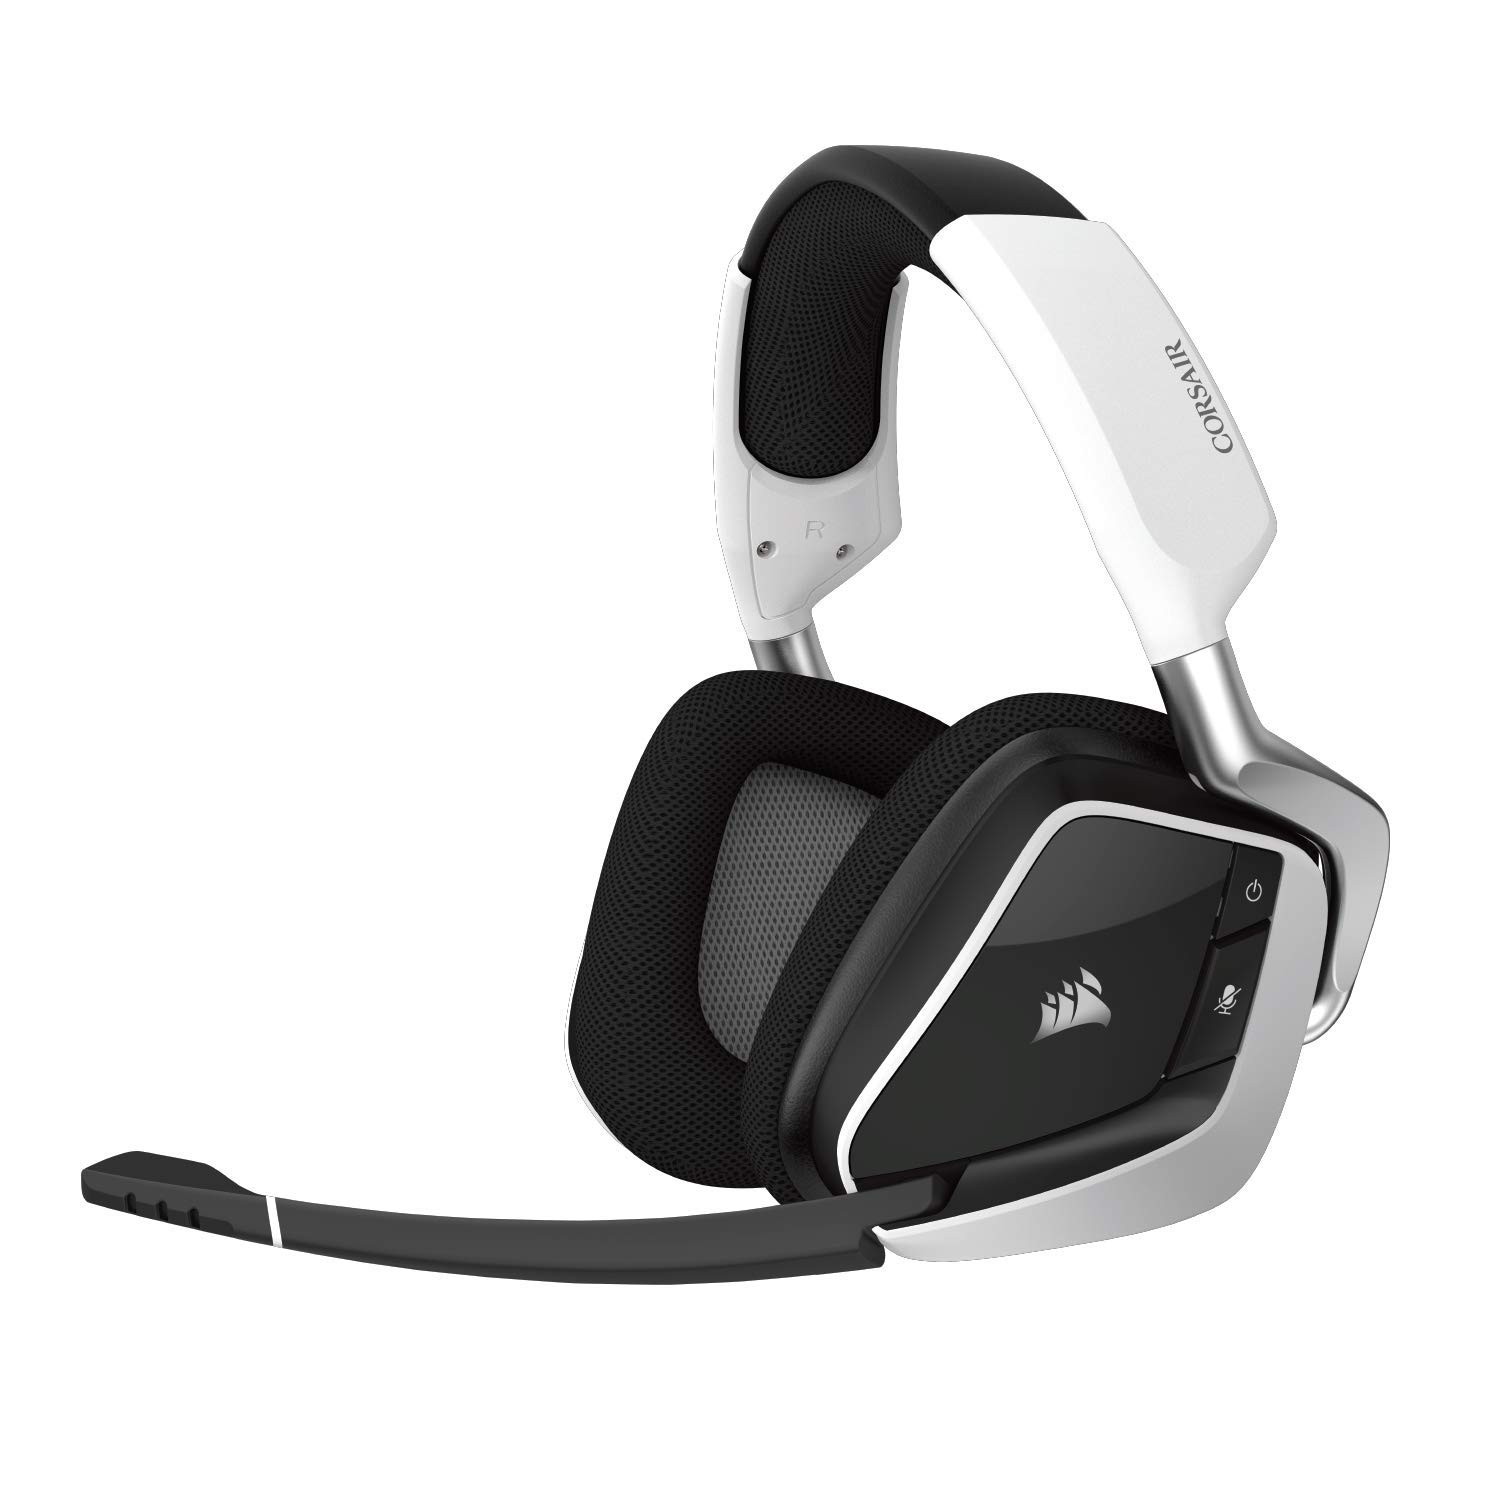 CORSAIR VOID PRO RGB Wireless Gaming Headset – Dolby 7.1 Surround Sound for PC – Discord Certified – White + RGB Headset Stand